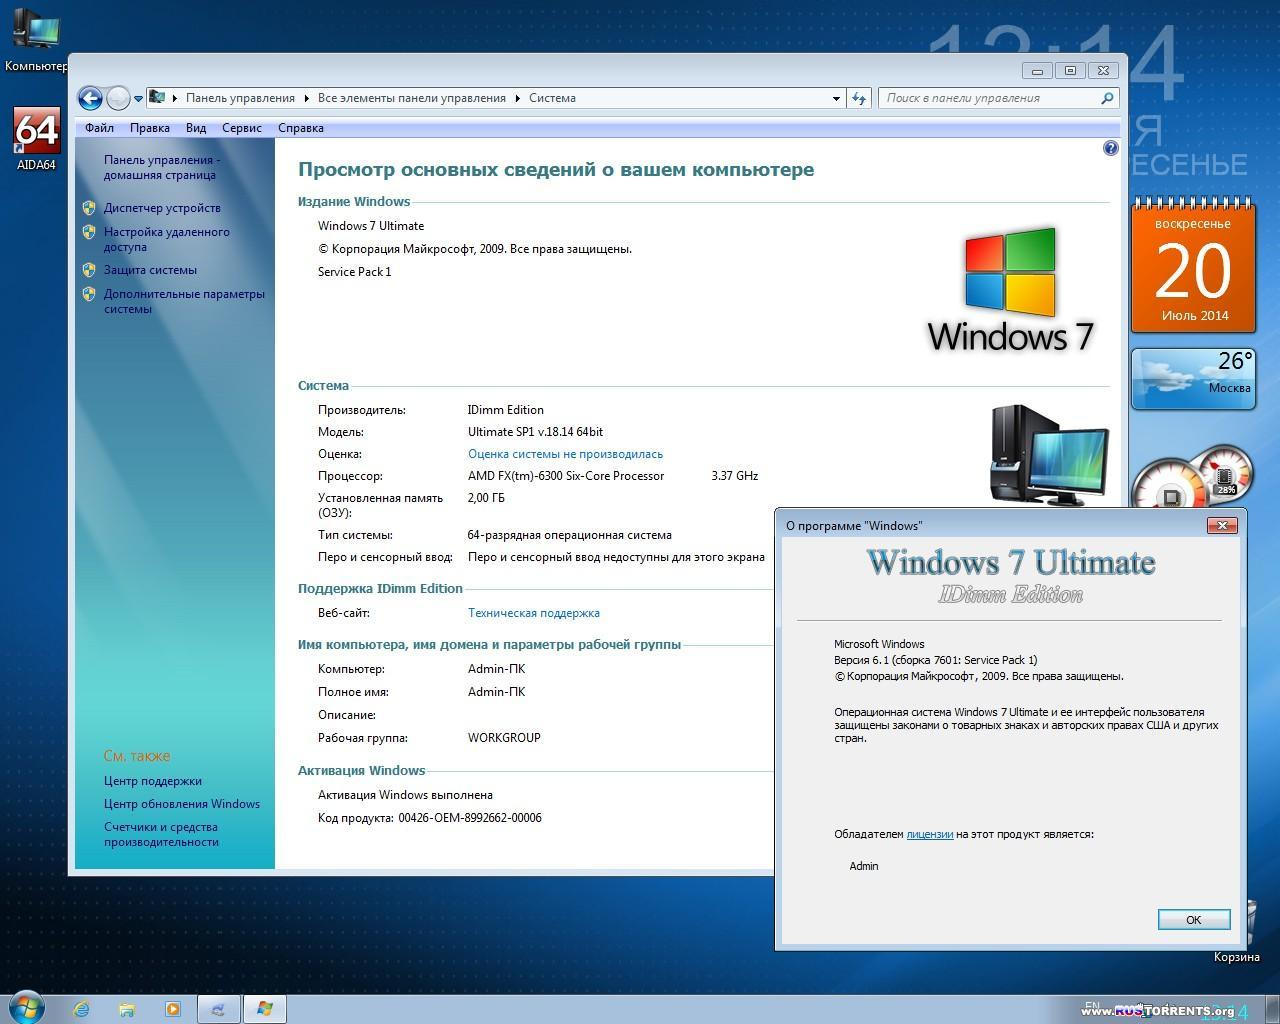 Windows 7 Ultimate SP1 x86/x64 IDimm Edition v.18.14 RUS